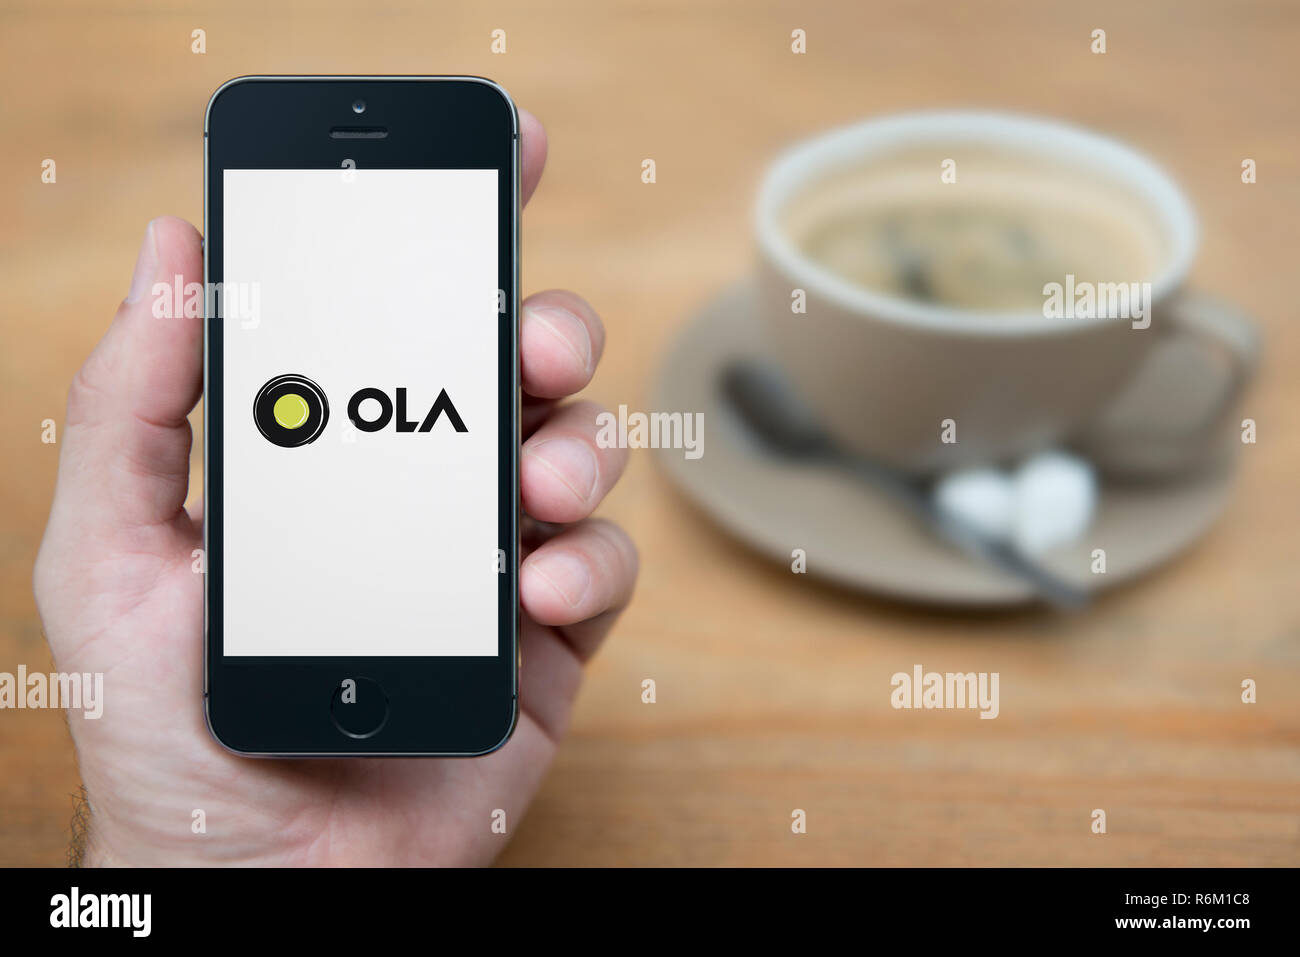 A man looks at his iPhone which displays the Ola Cabs logo (Editorial use only). - Stock Image